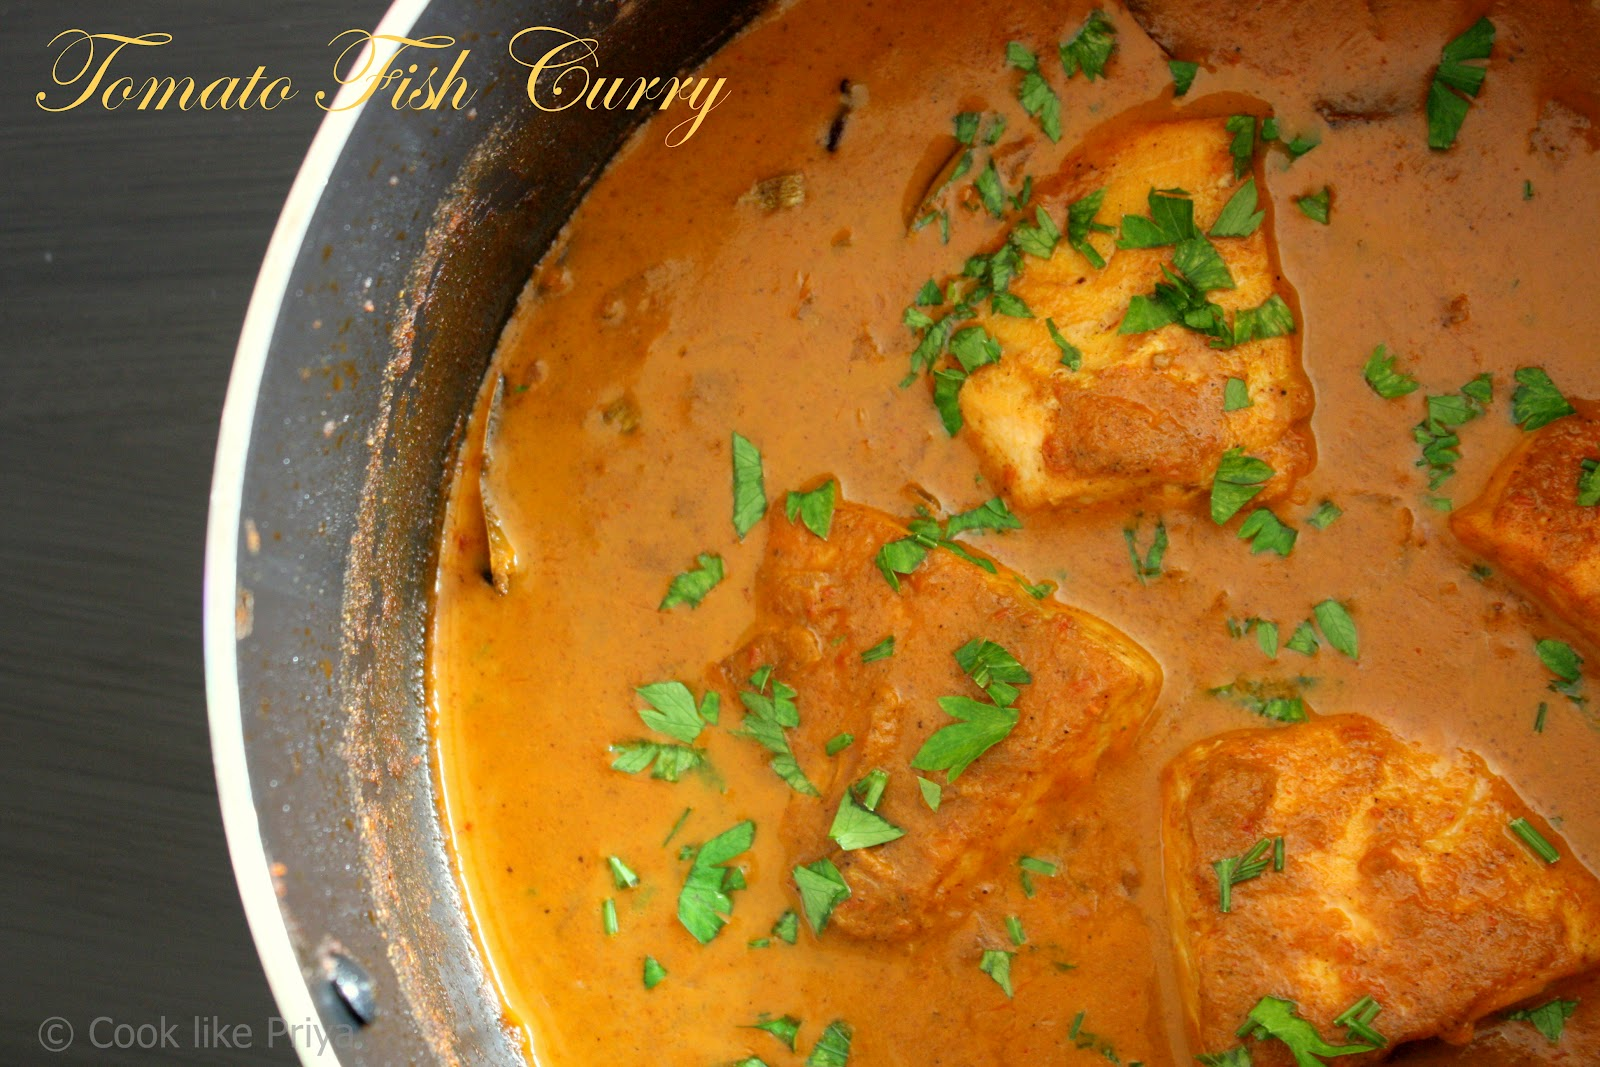 Cook Like Priya Tomato Fish Curry